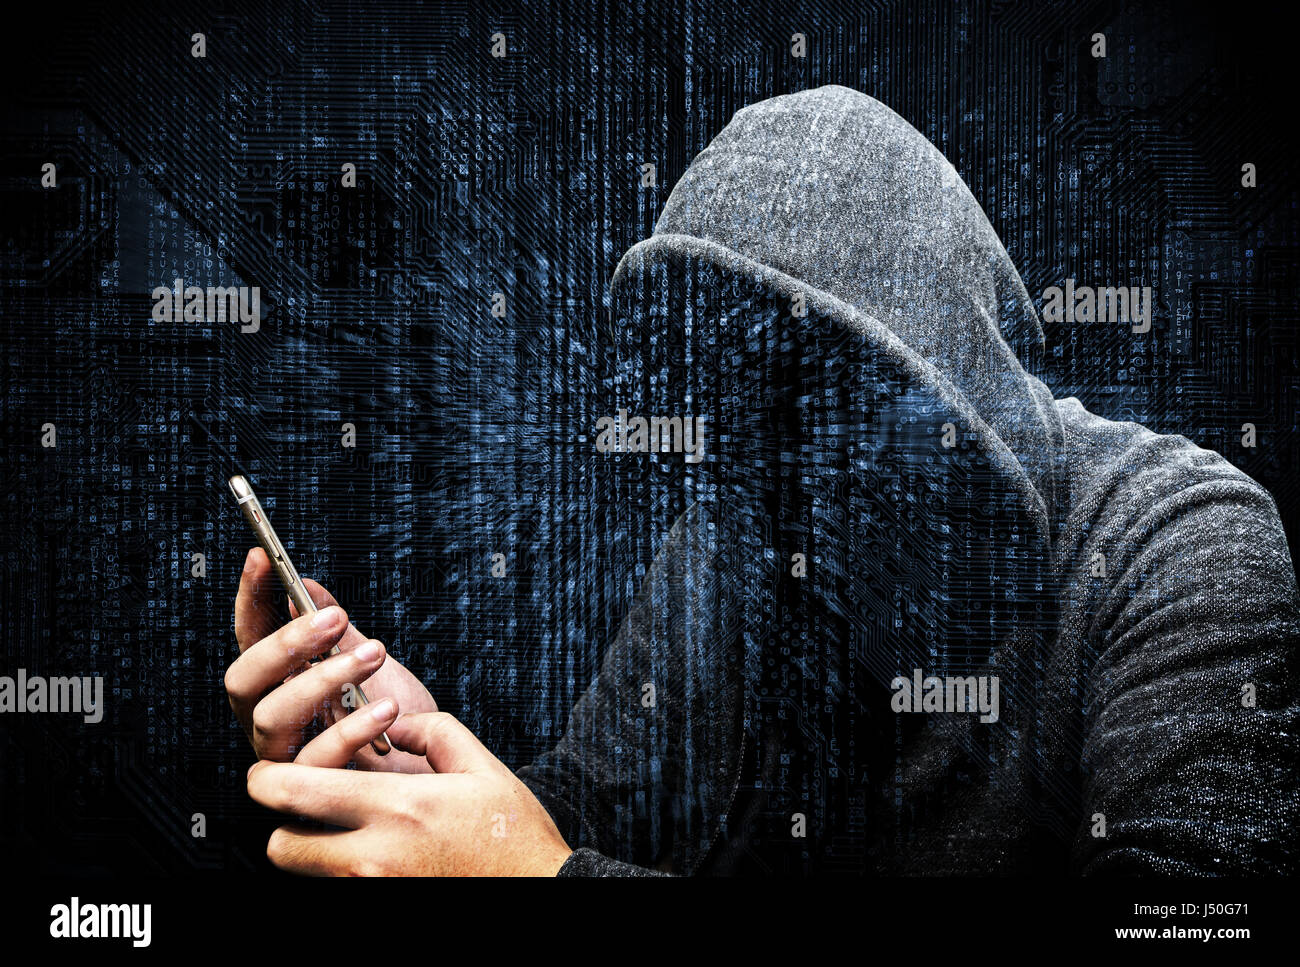 Double Exposure of hooded cyber crime hacker using mobile phone internet hacking in to cyberspace,online personal - Stock Image